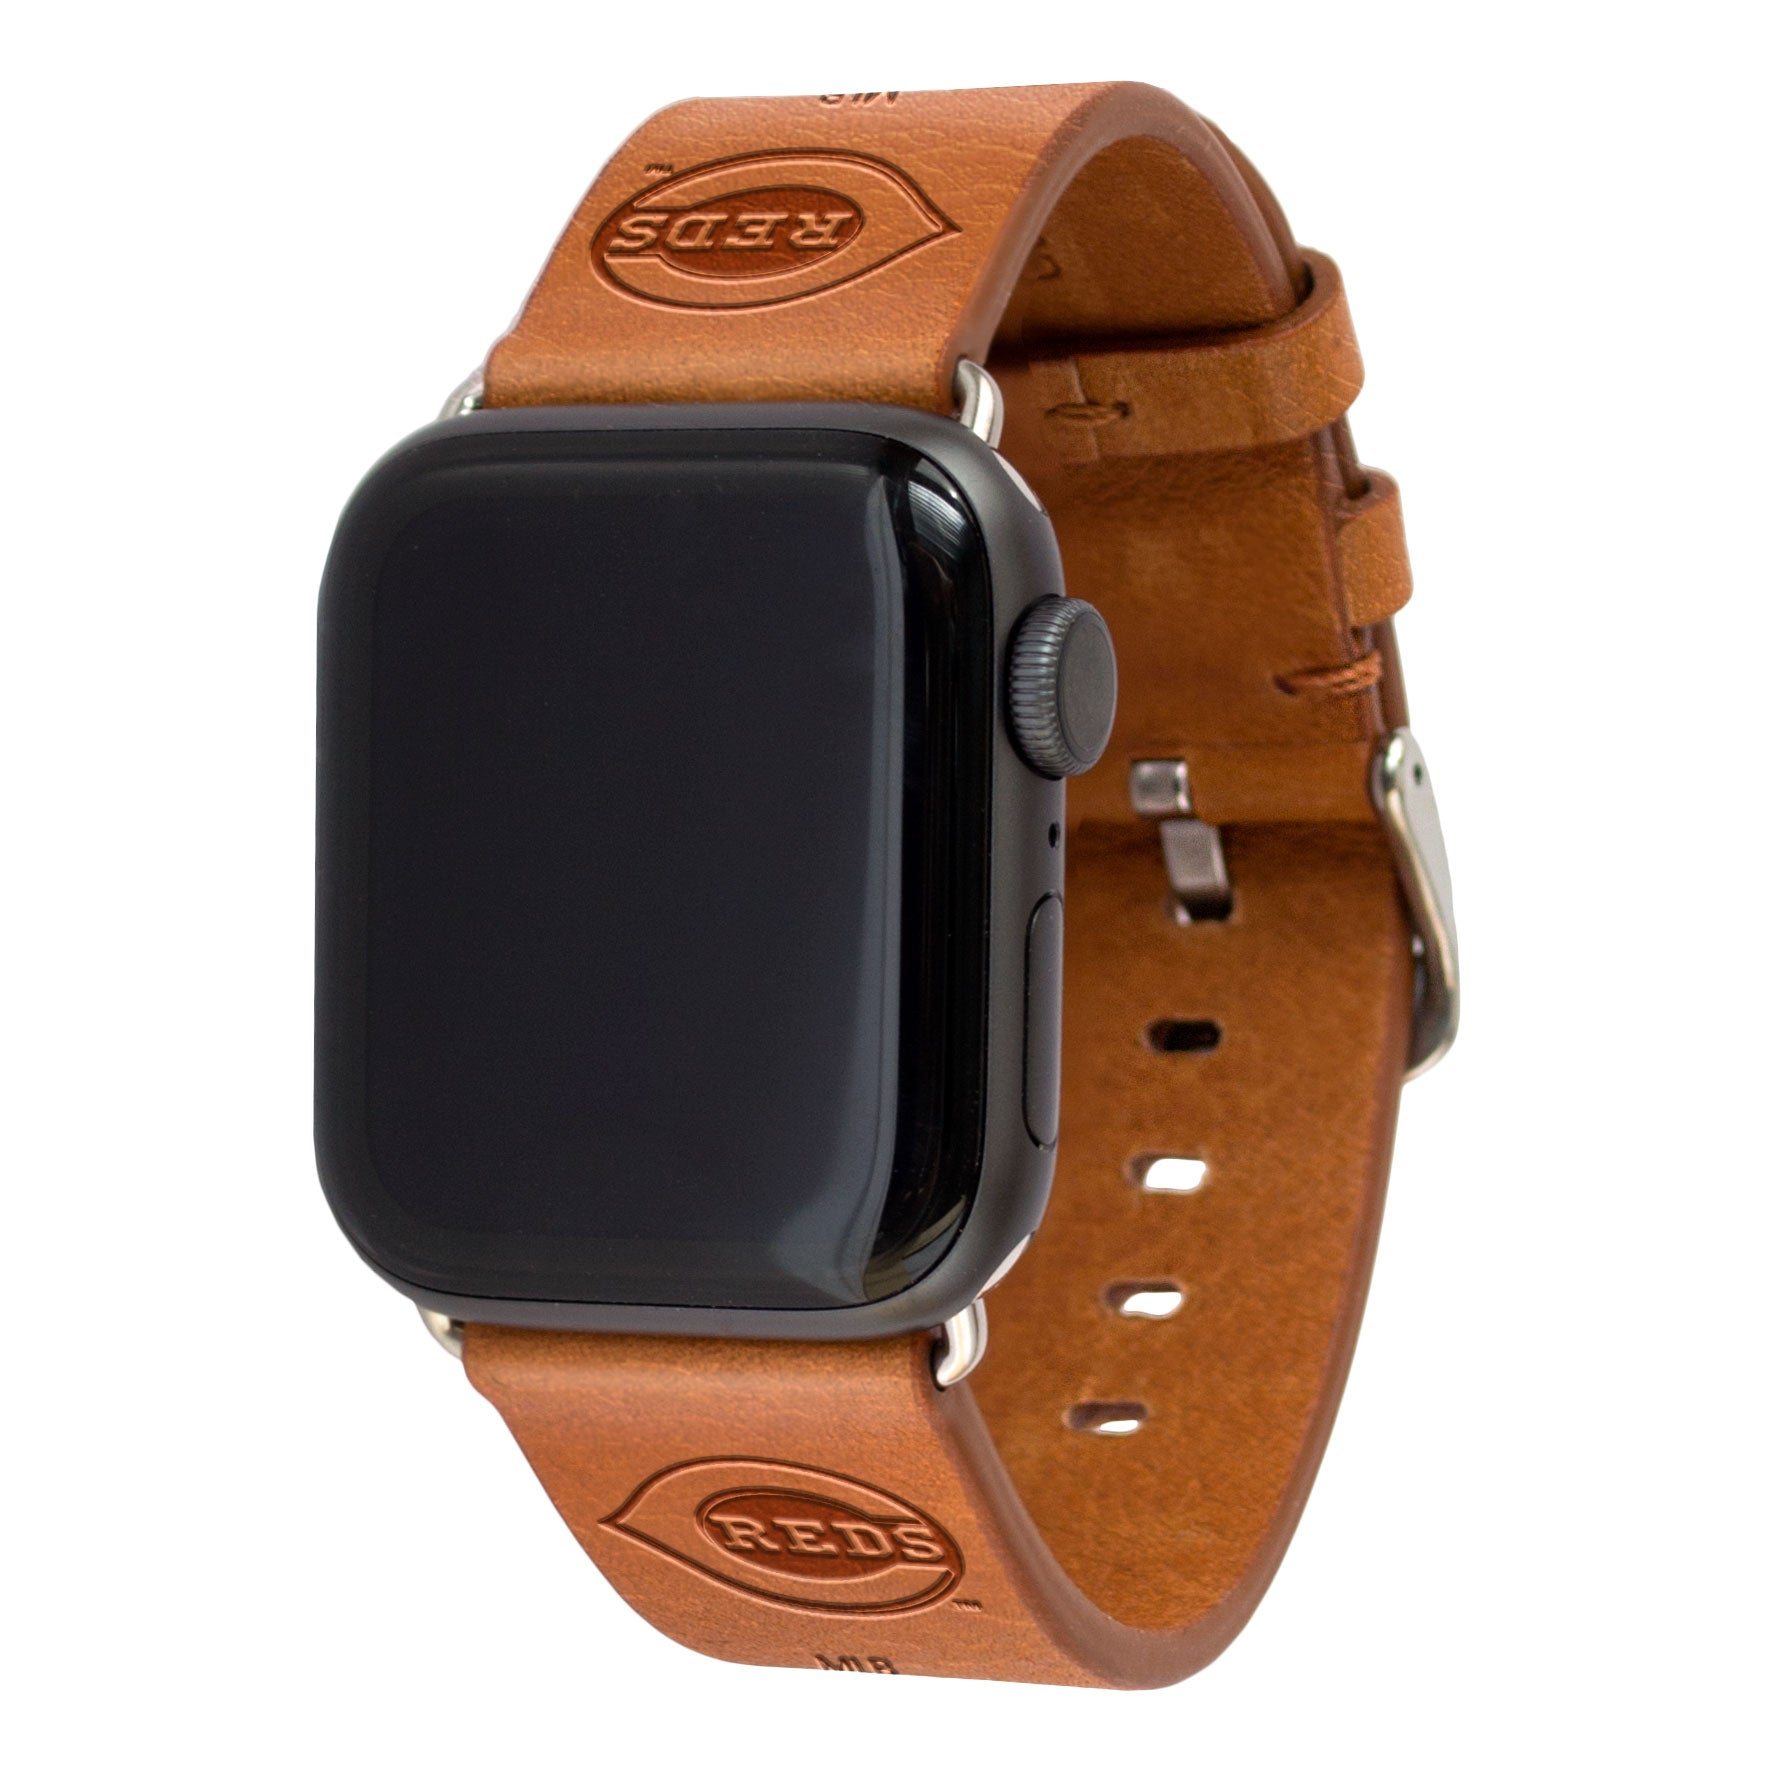 Cincinnati Reds Leather Band Compatible with Apple Watch - AffinityBands